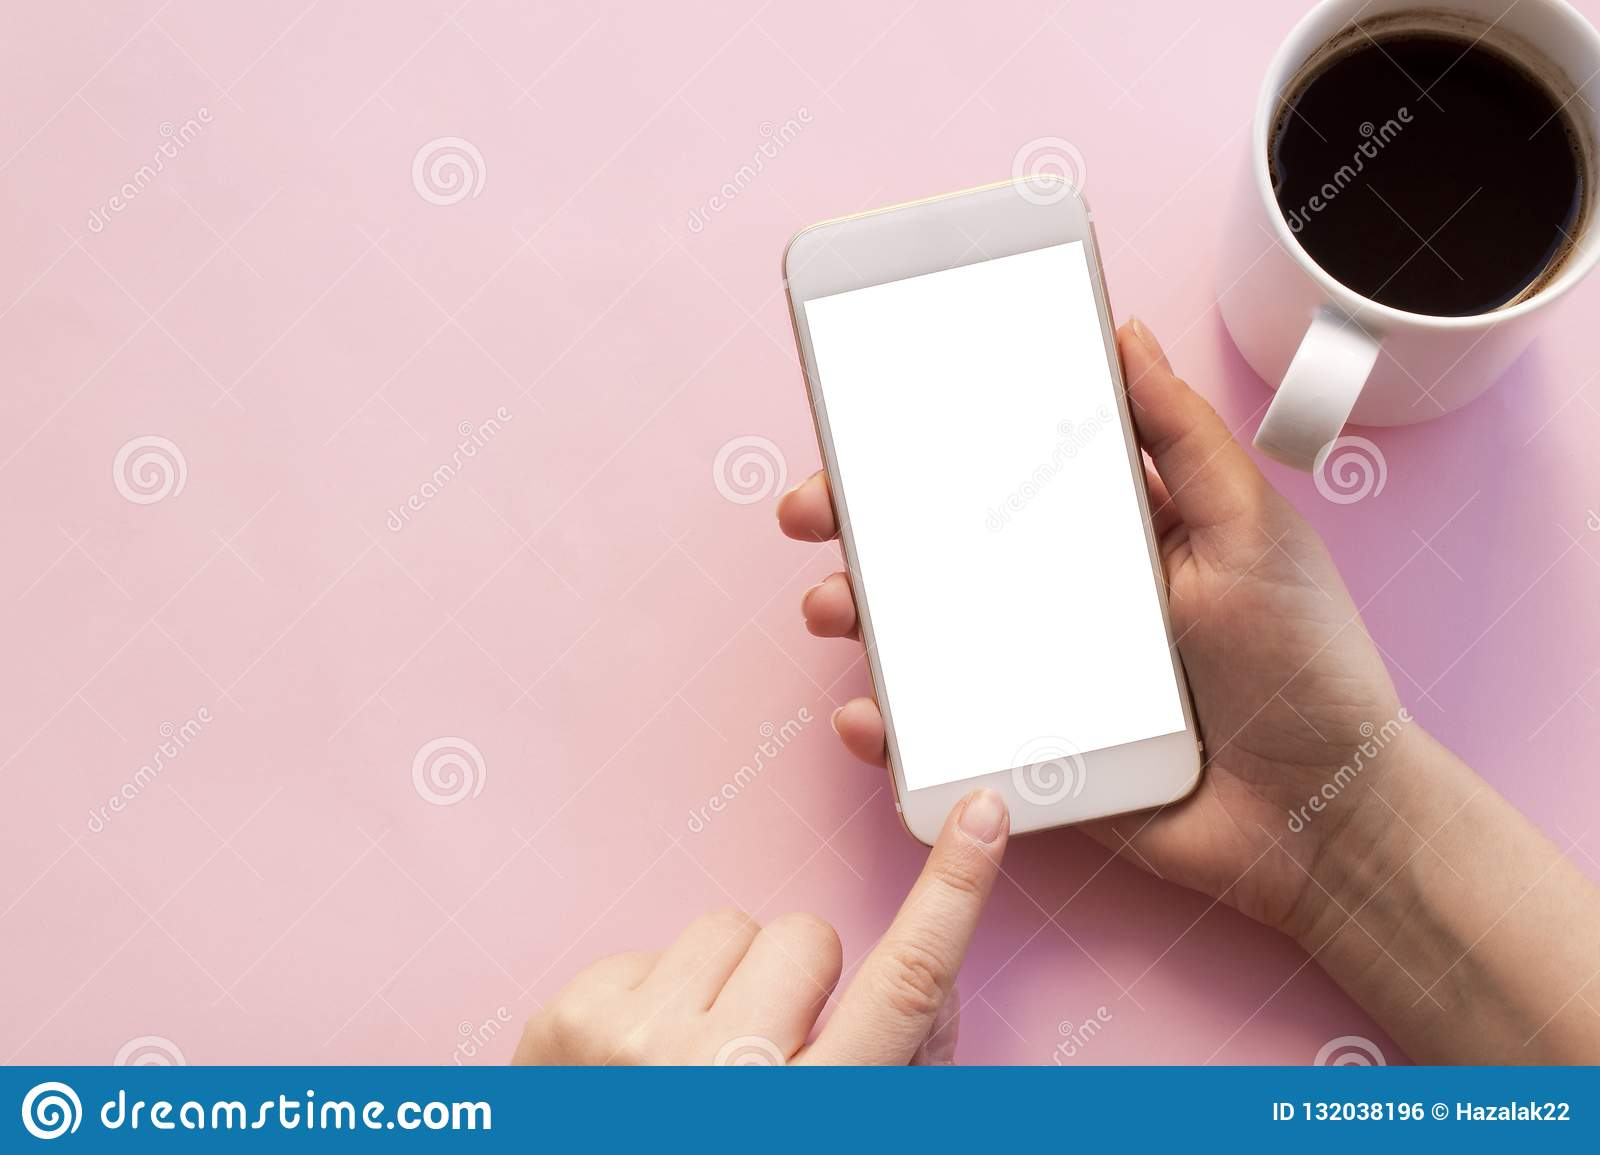 Using mobile phone holding coffee cup.